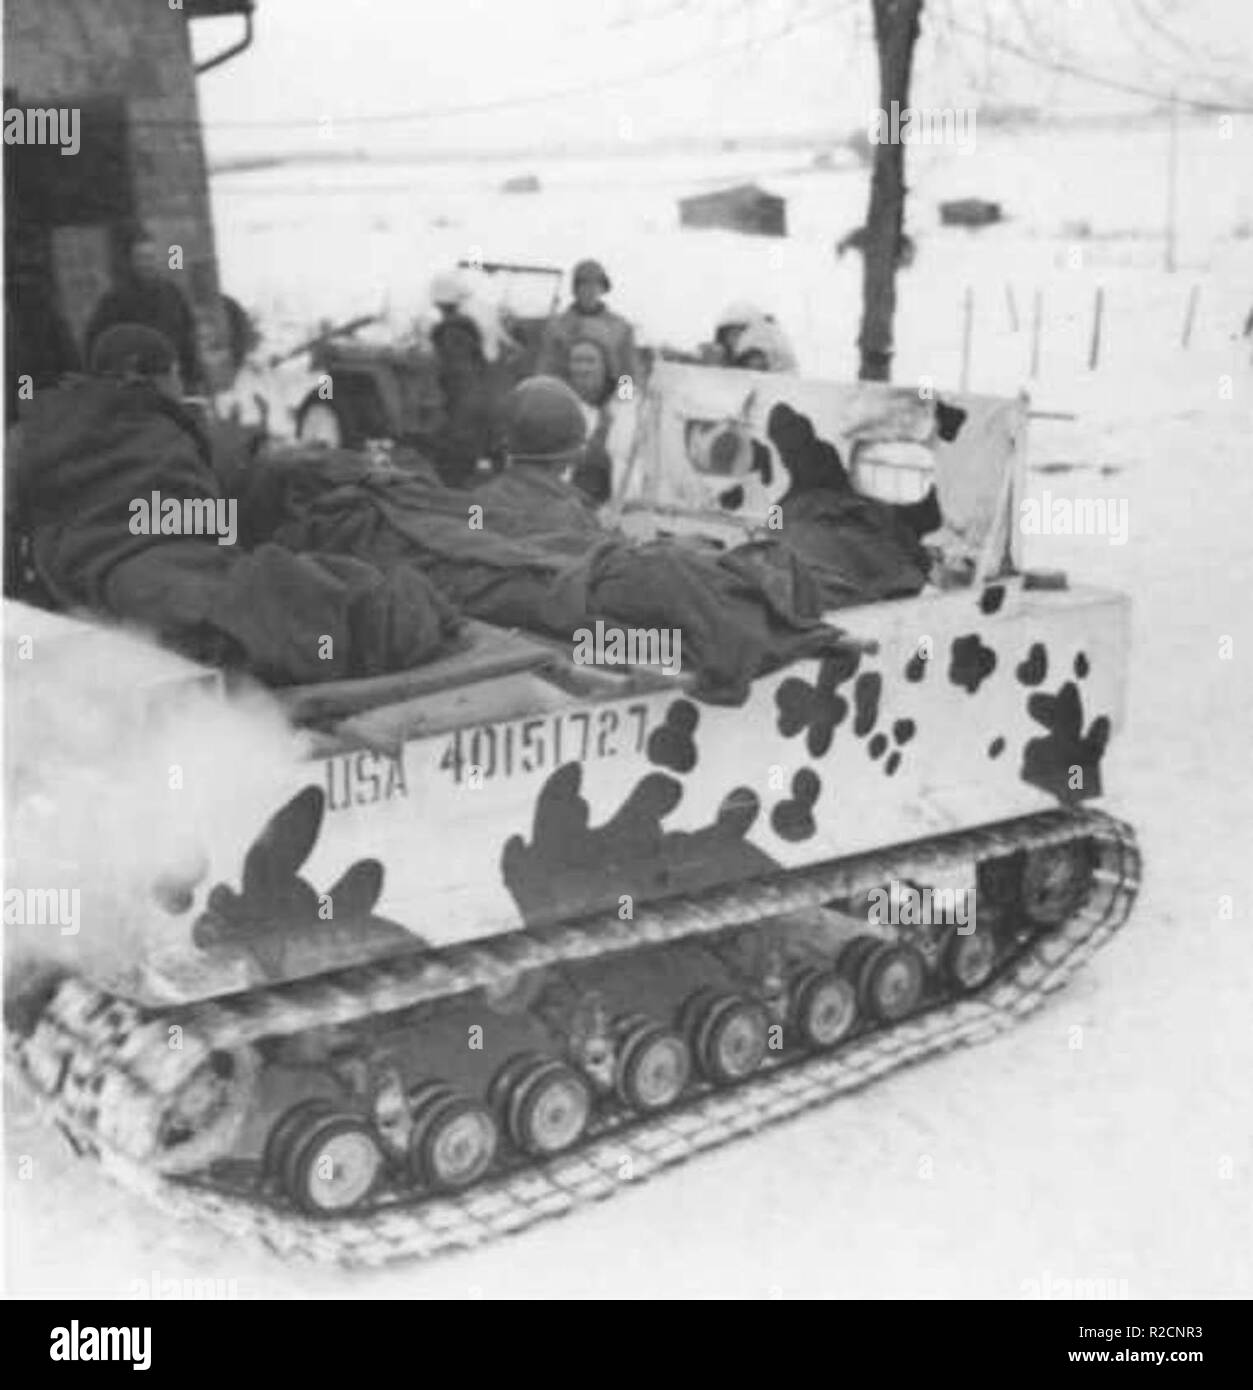 hight resolution of m29 weasel in winter 1944 stock image